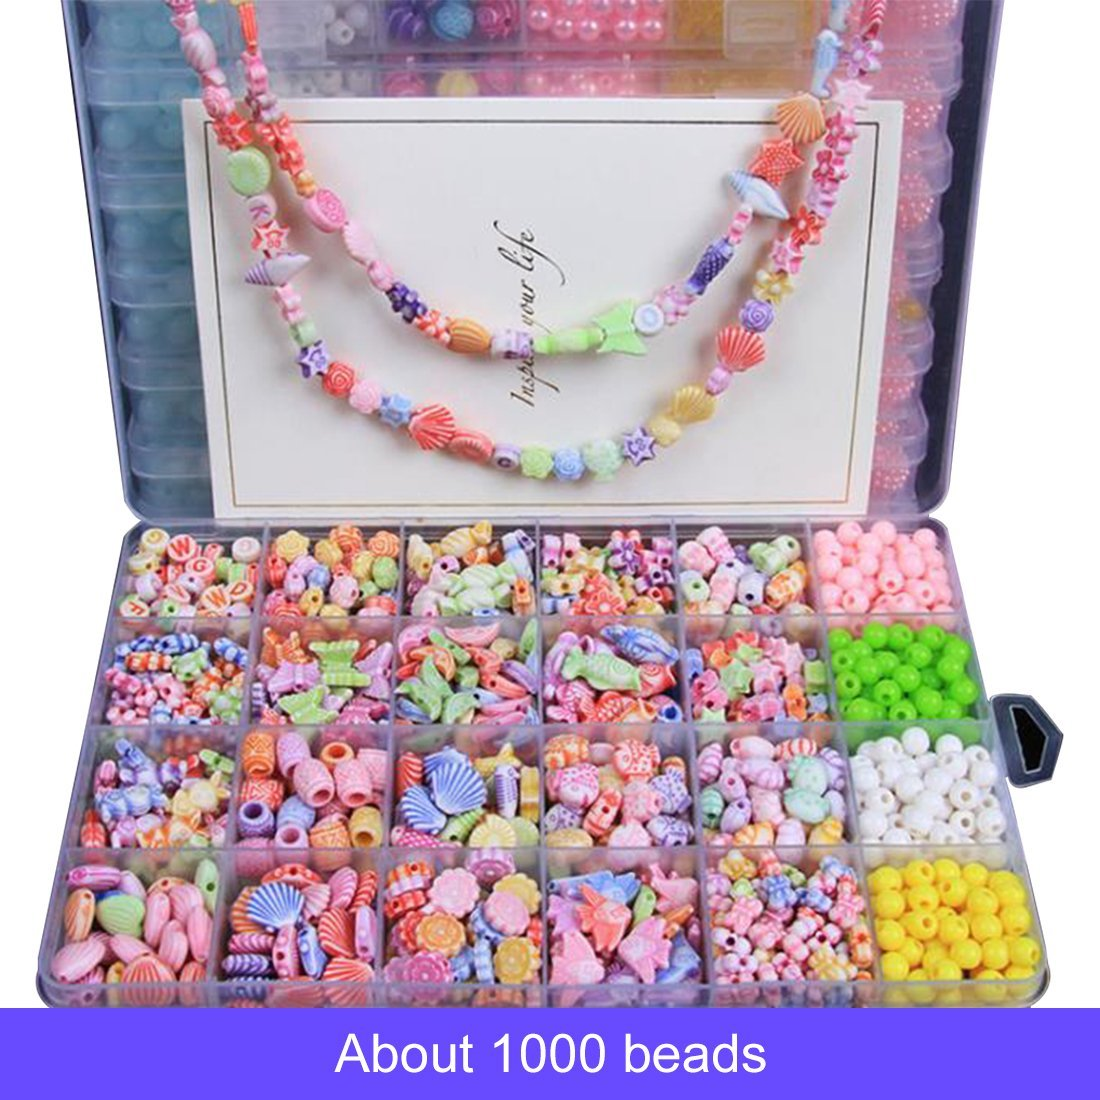 iSuperb DIY Beads Jewelry BPA Free Pop Beads Jewelry Making Kit Kids Beading Supplies for Arts and Crafts Bracelet Rings Making (A)